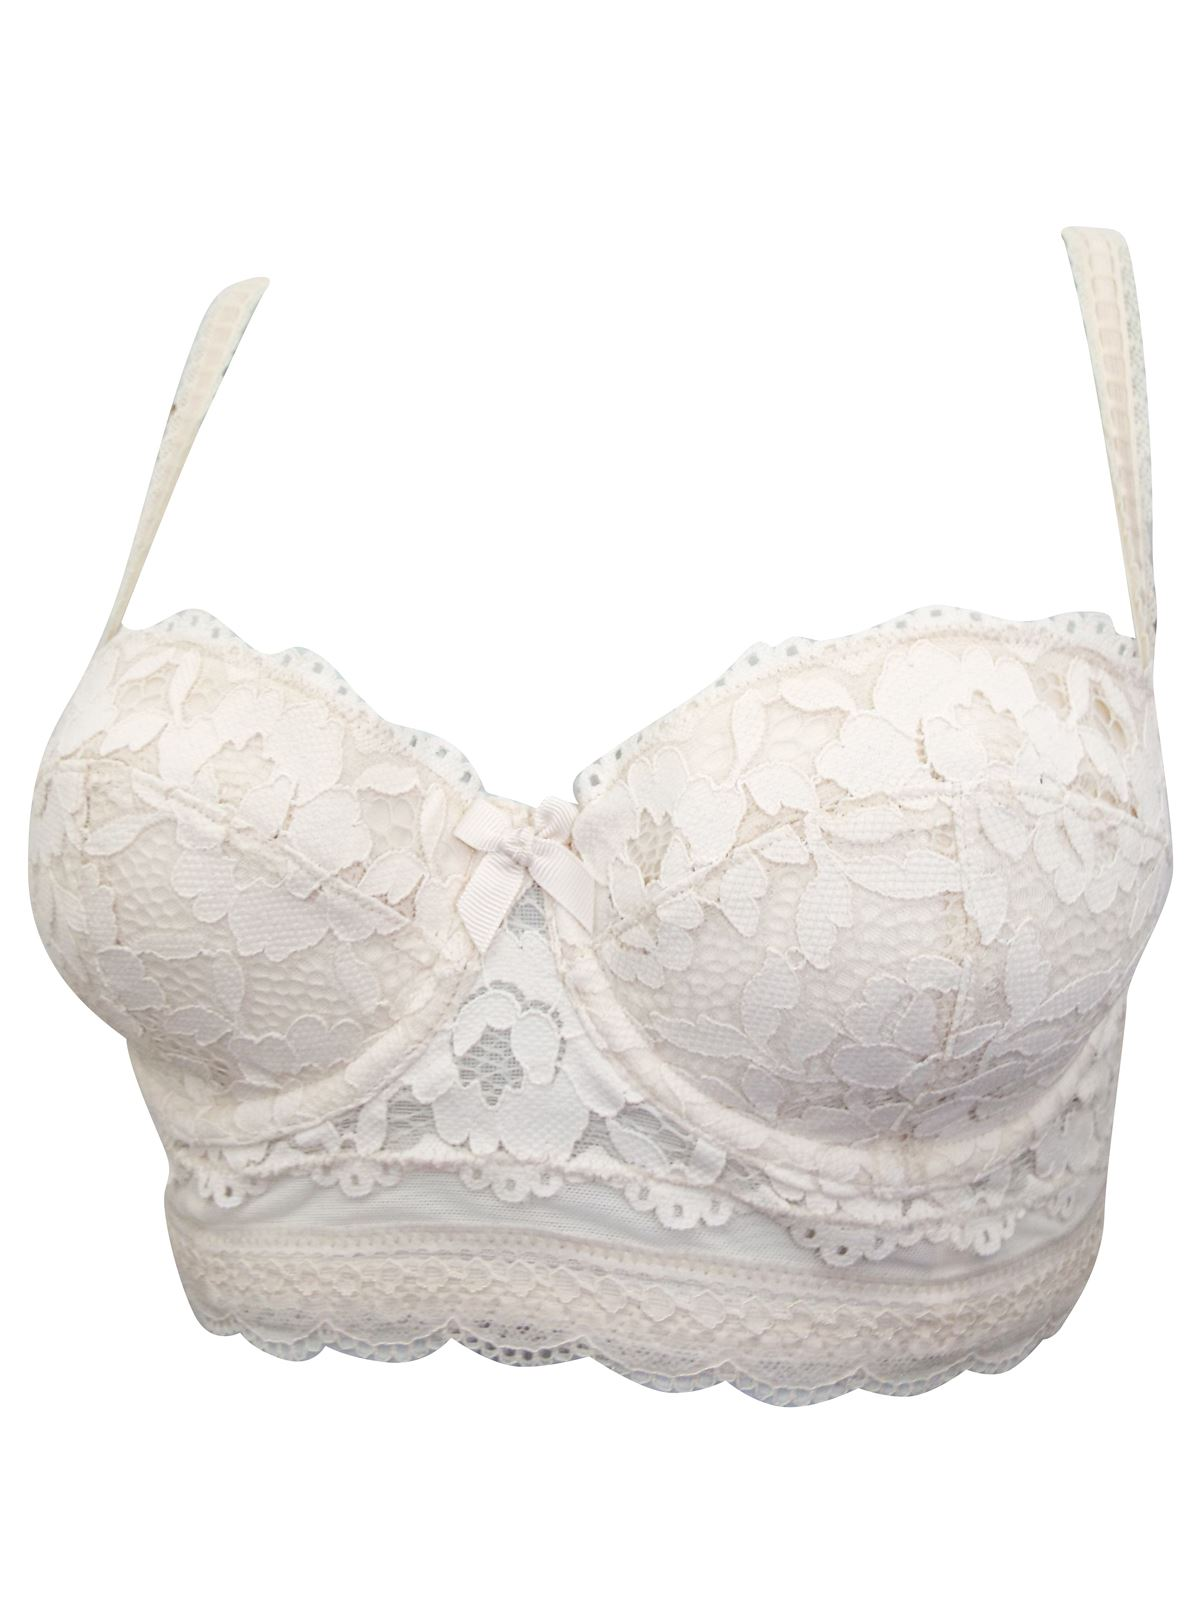 Ex-M-amp-S-Marks-And-Spencer-Lightly-Padded-Lace-Longline-Balcony-Bra thumbnail 7